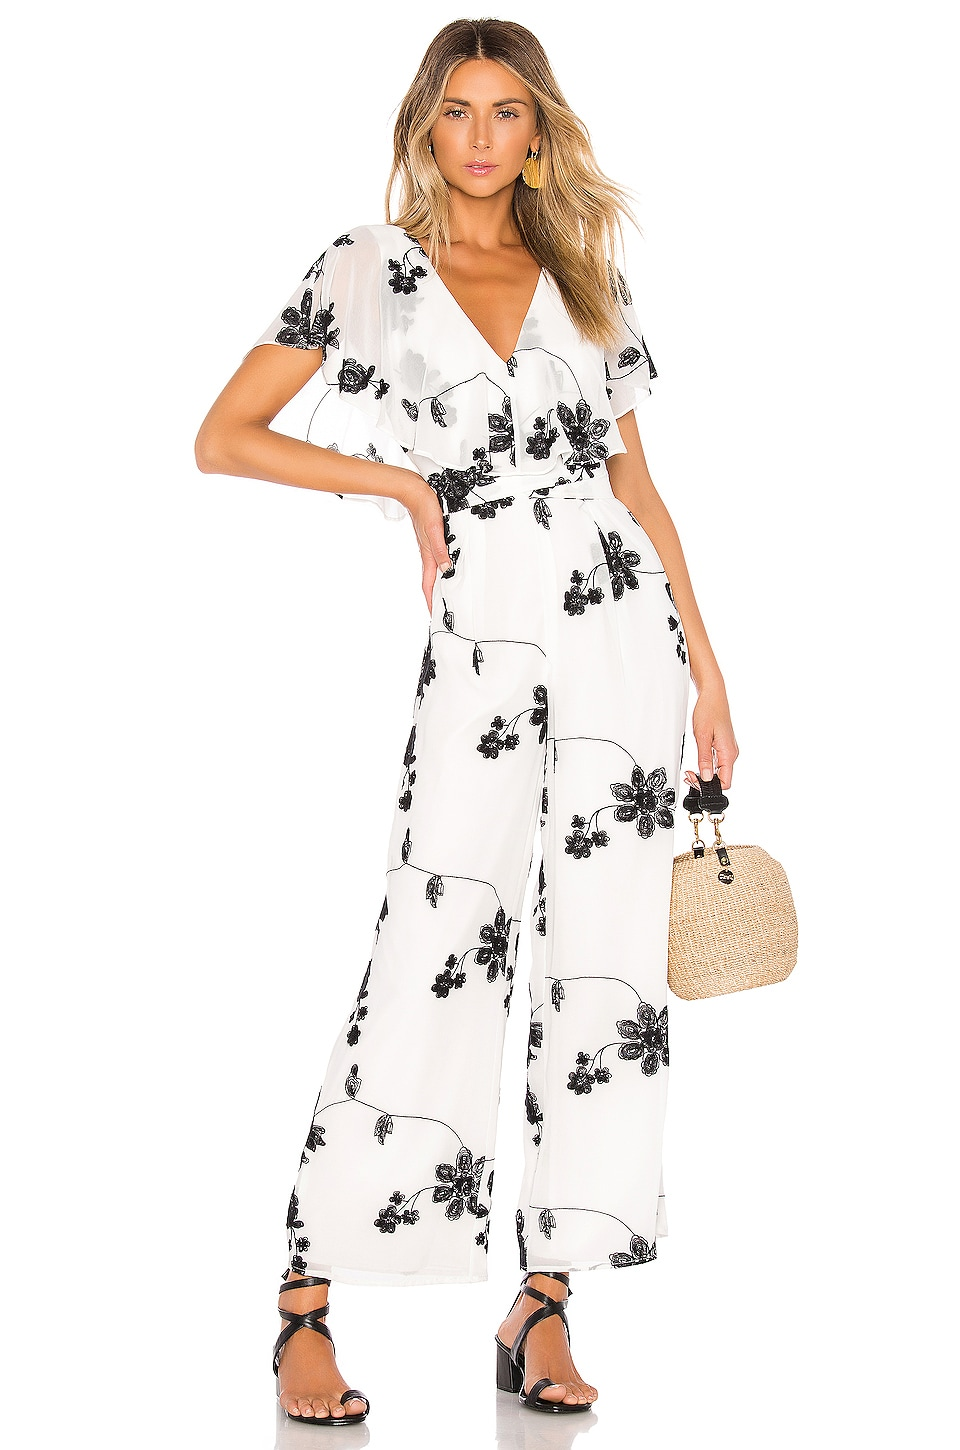 House of Harlow 1960 x REVOLVE Yasmine Jumpsuit in White & Black